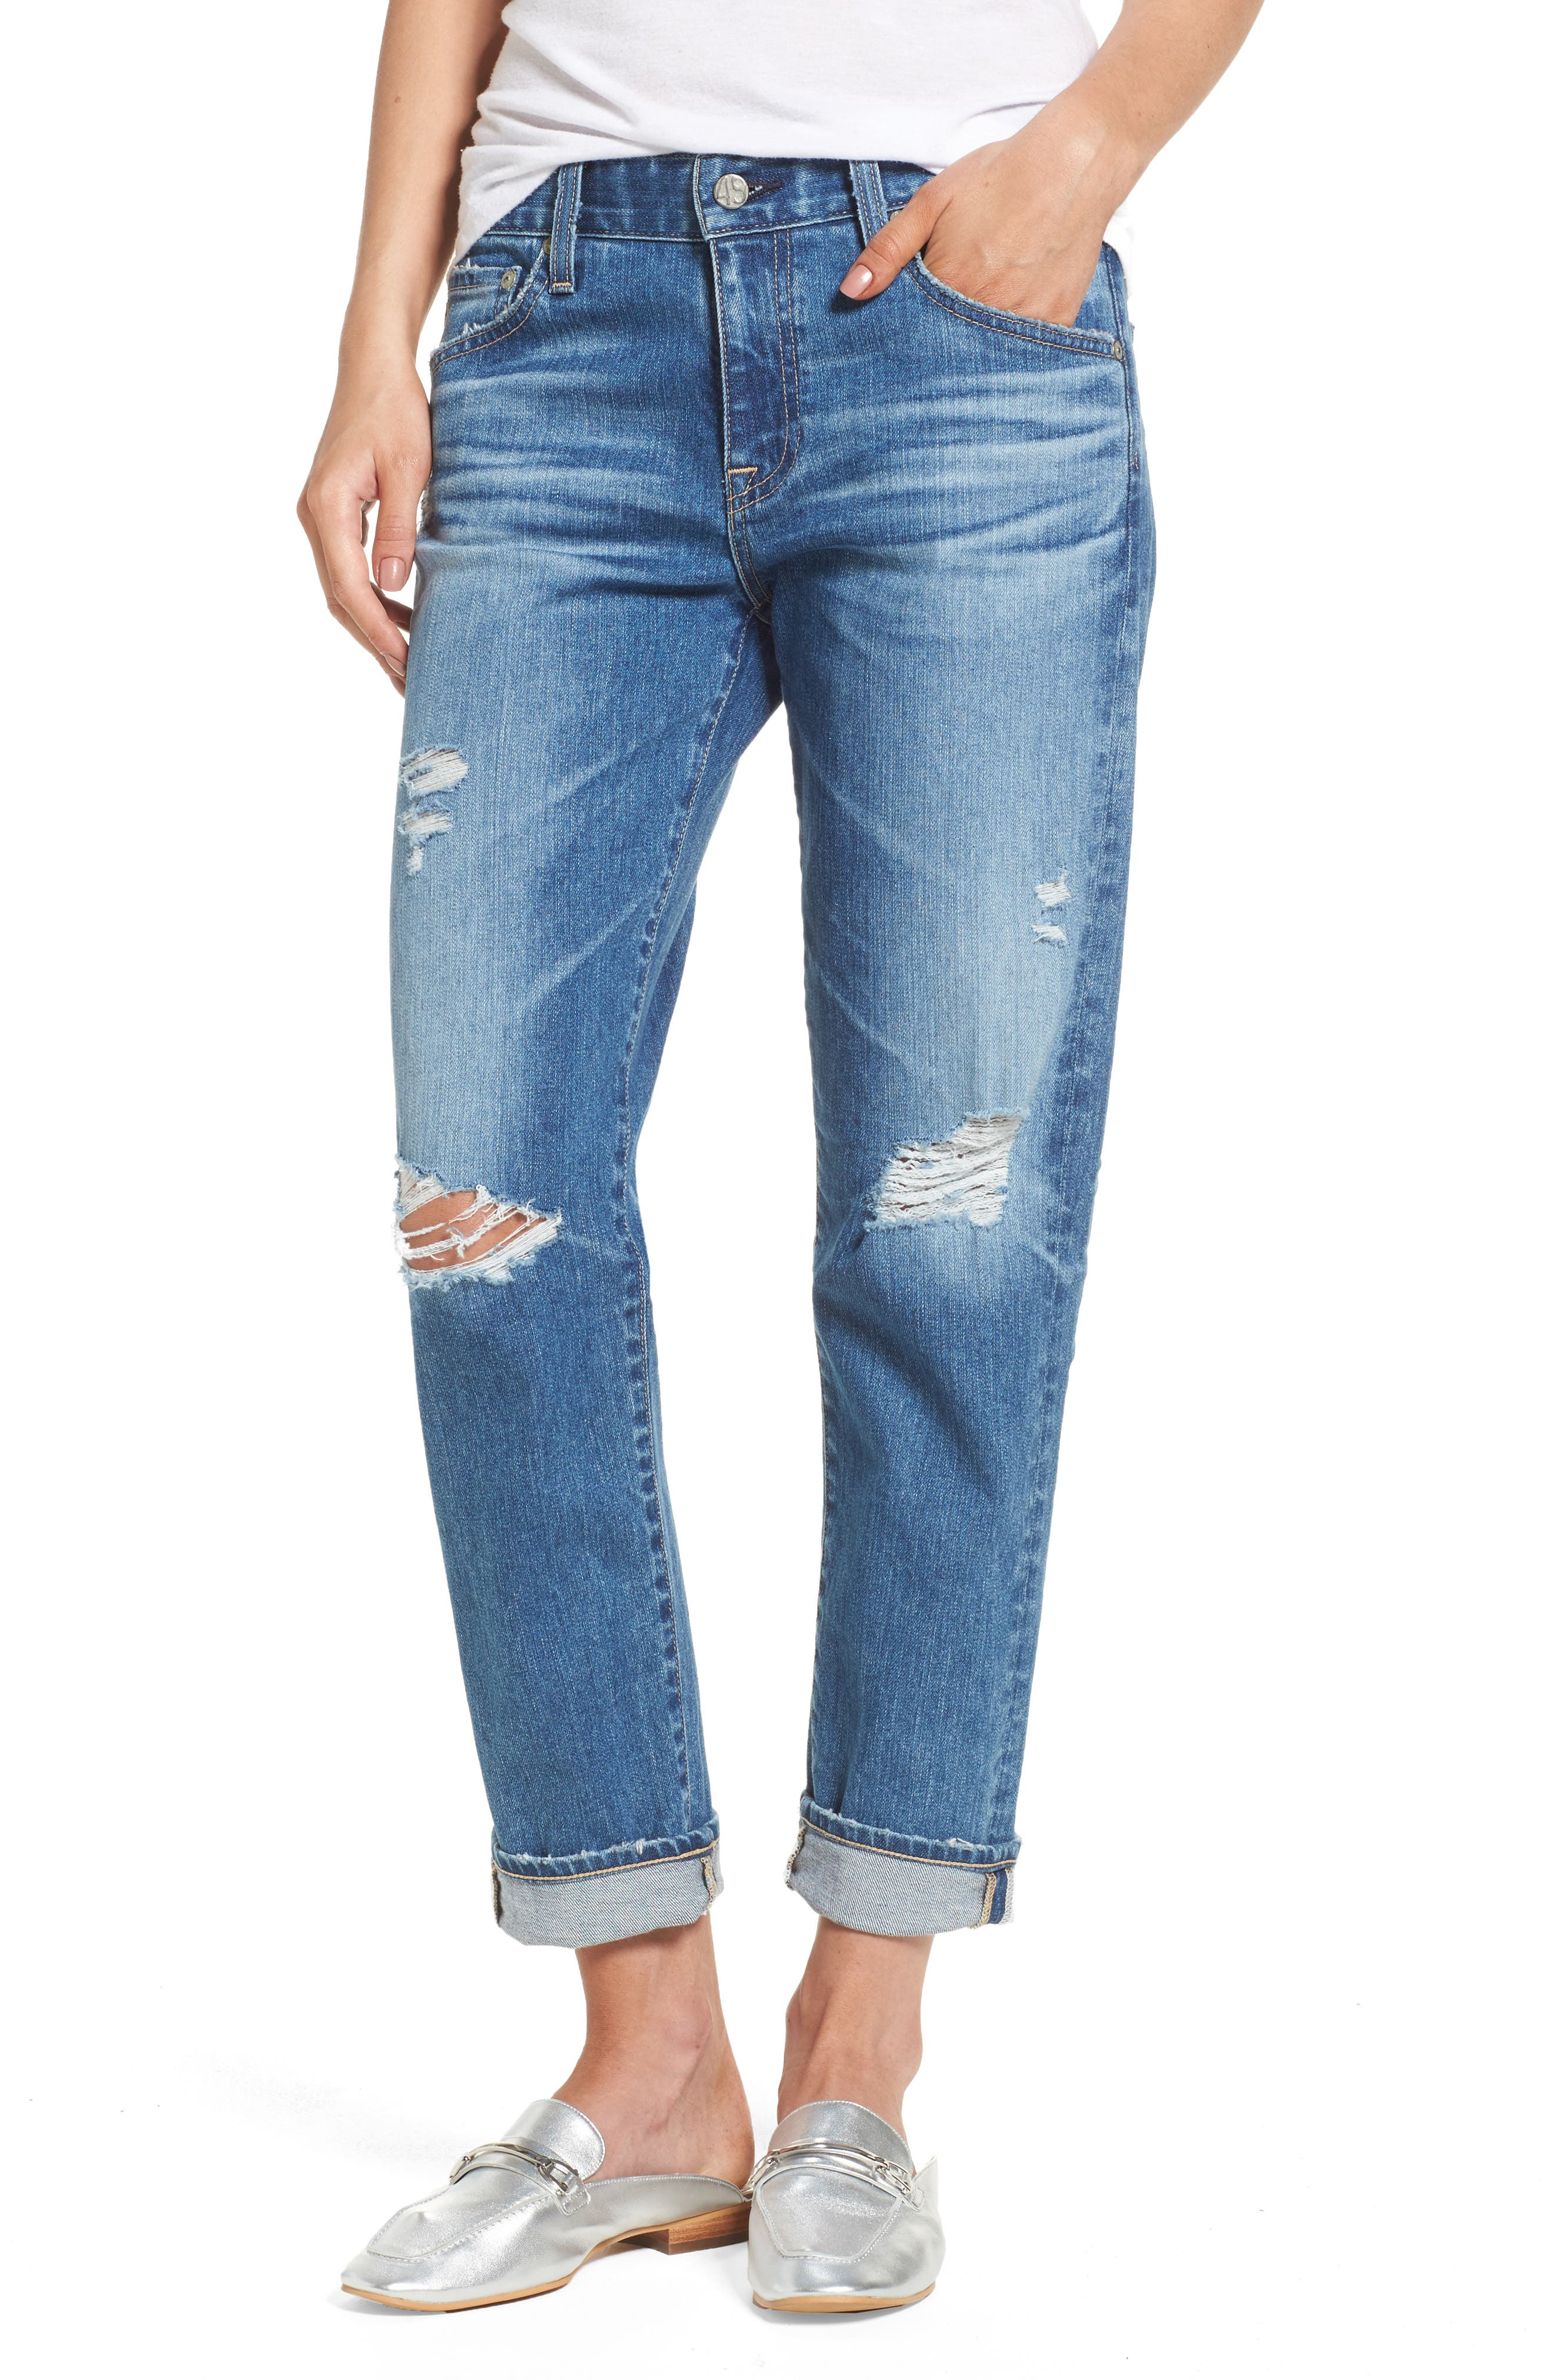 The Wrangler jeans women's collection features the ladies jeans you want. Shop our selection of stylish Wrangler jeans for women and find comfortably fitting western jeans .